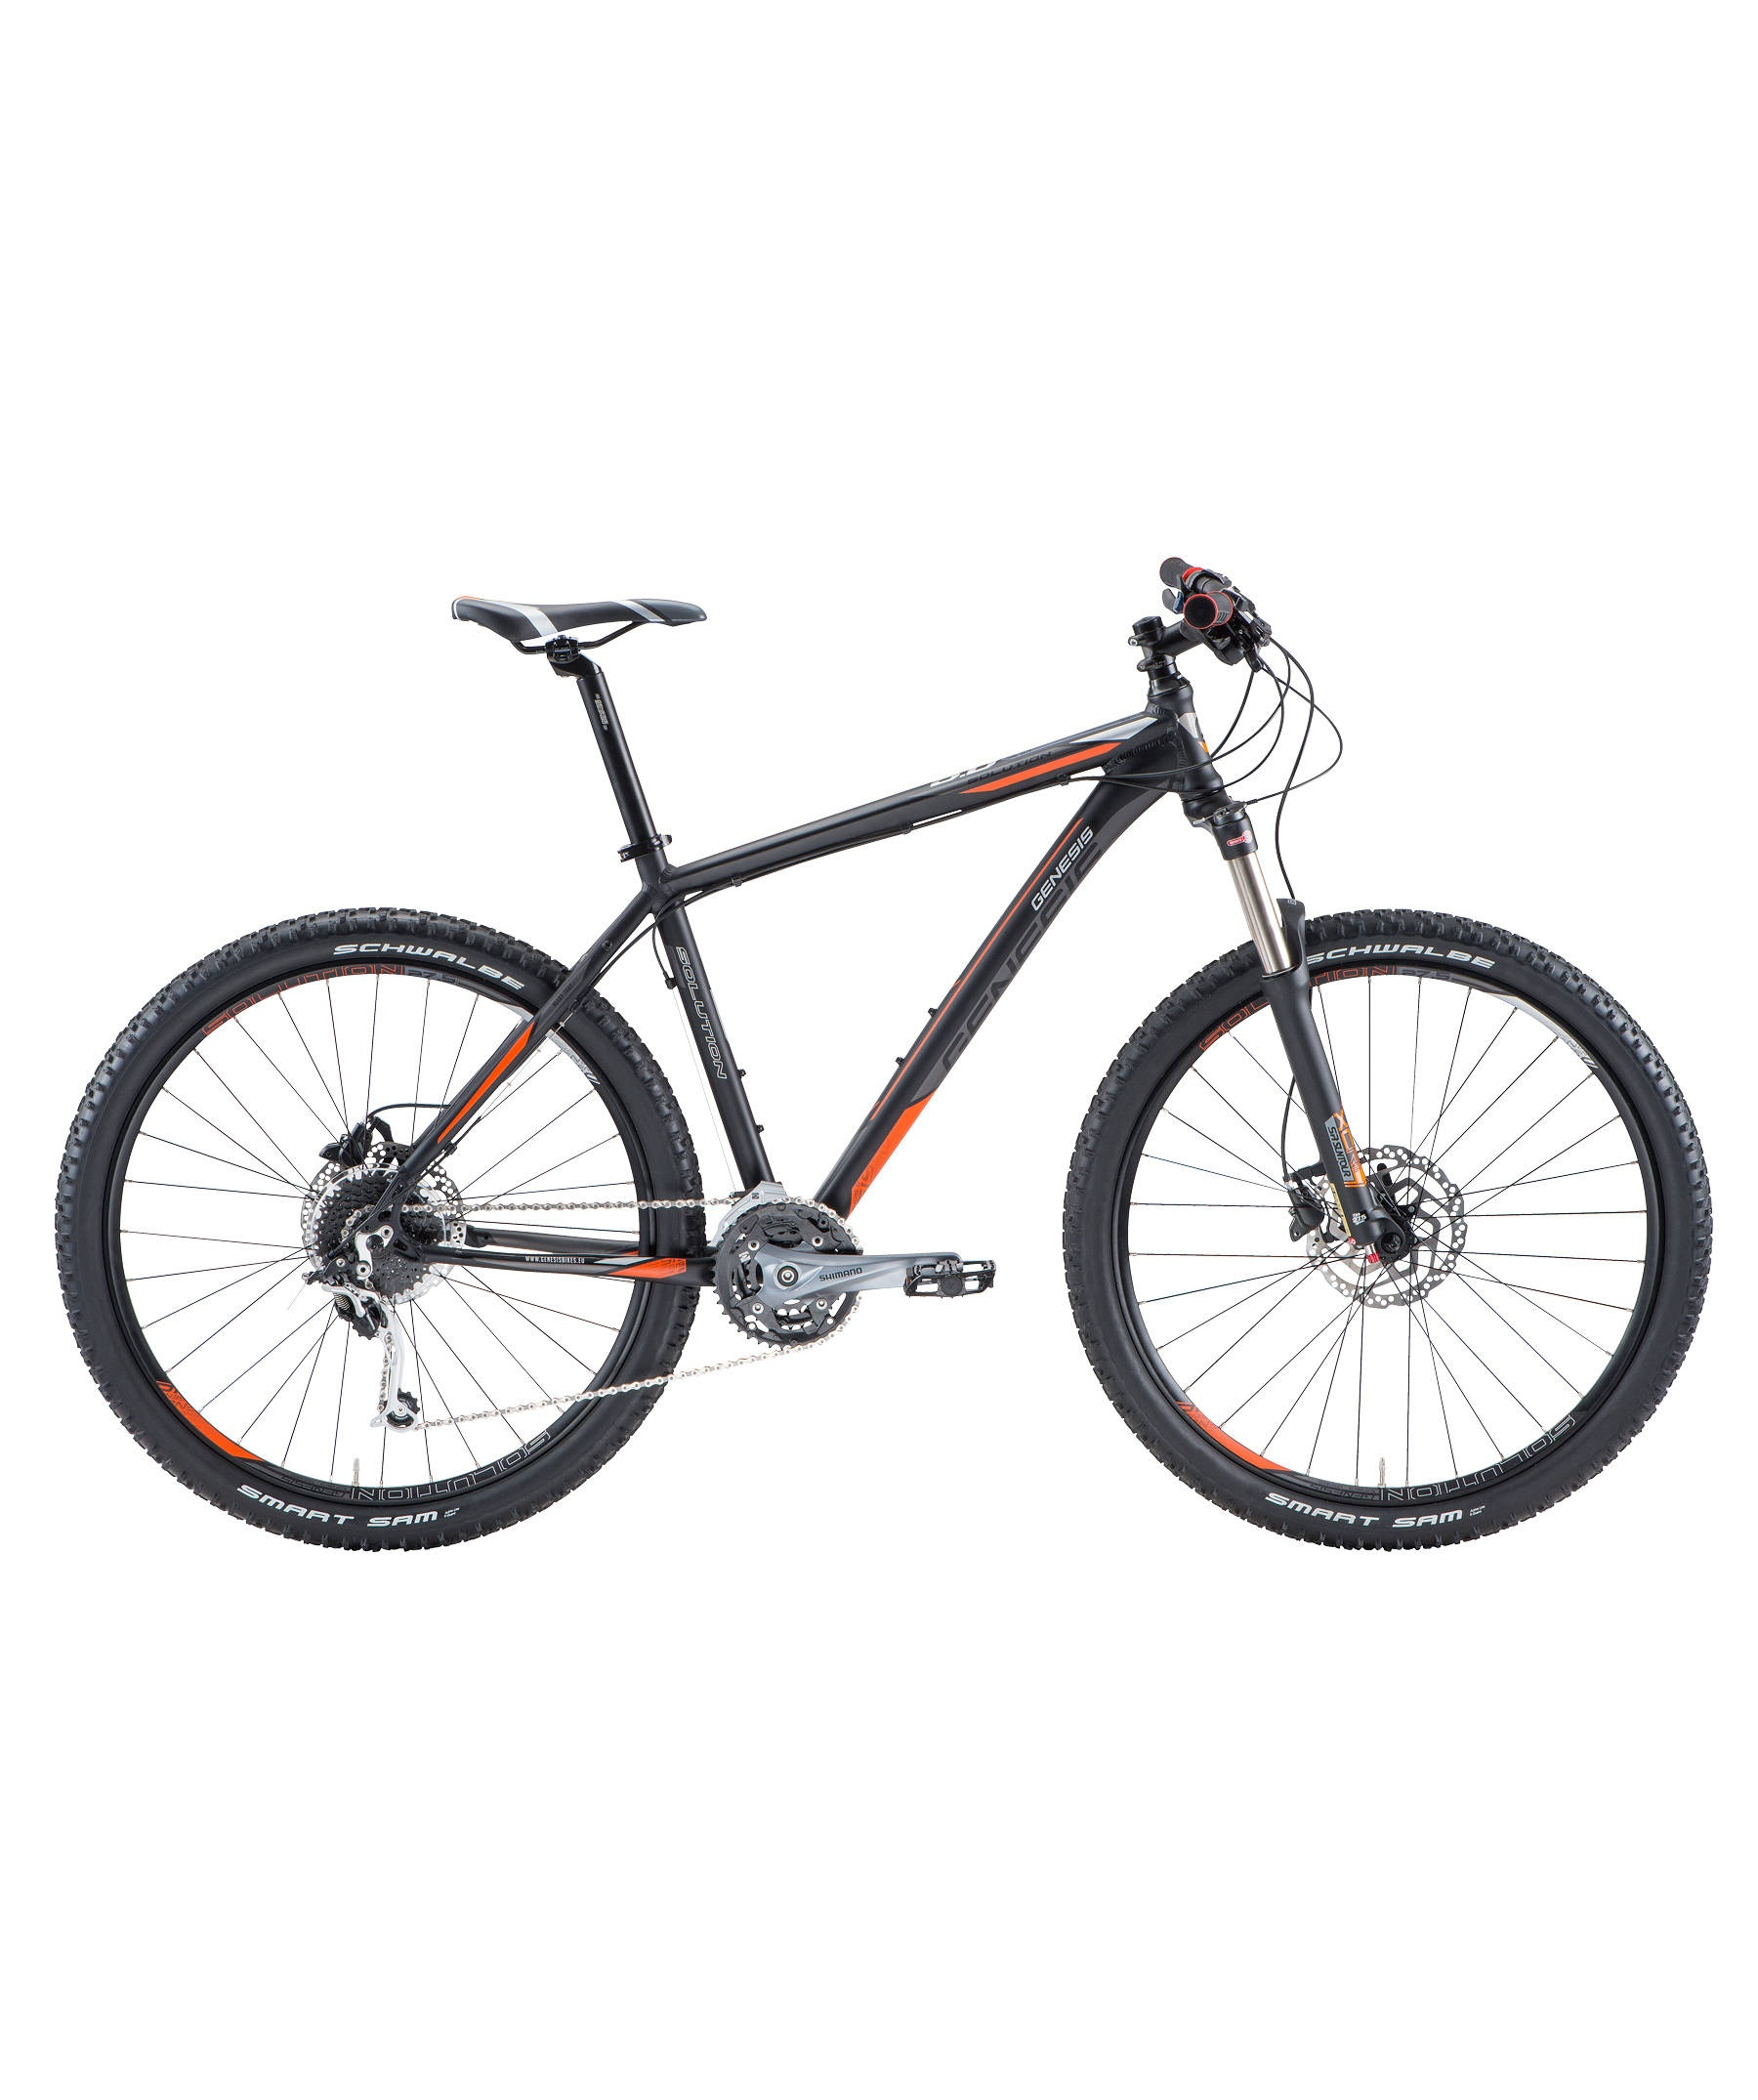 Genesis Mountainbike